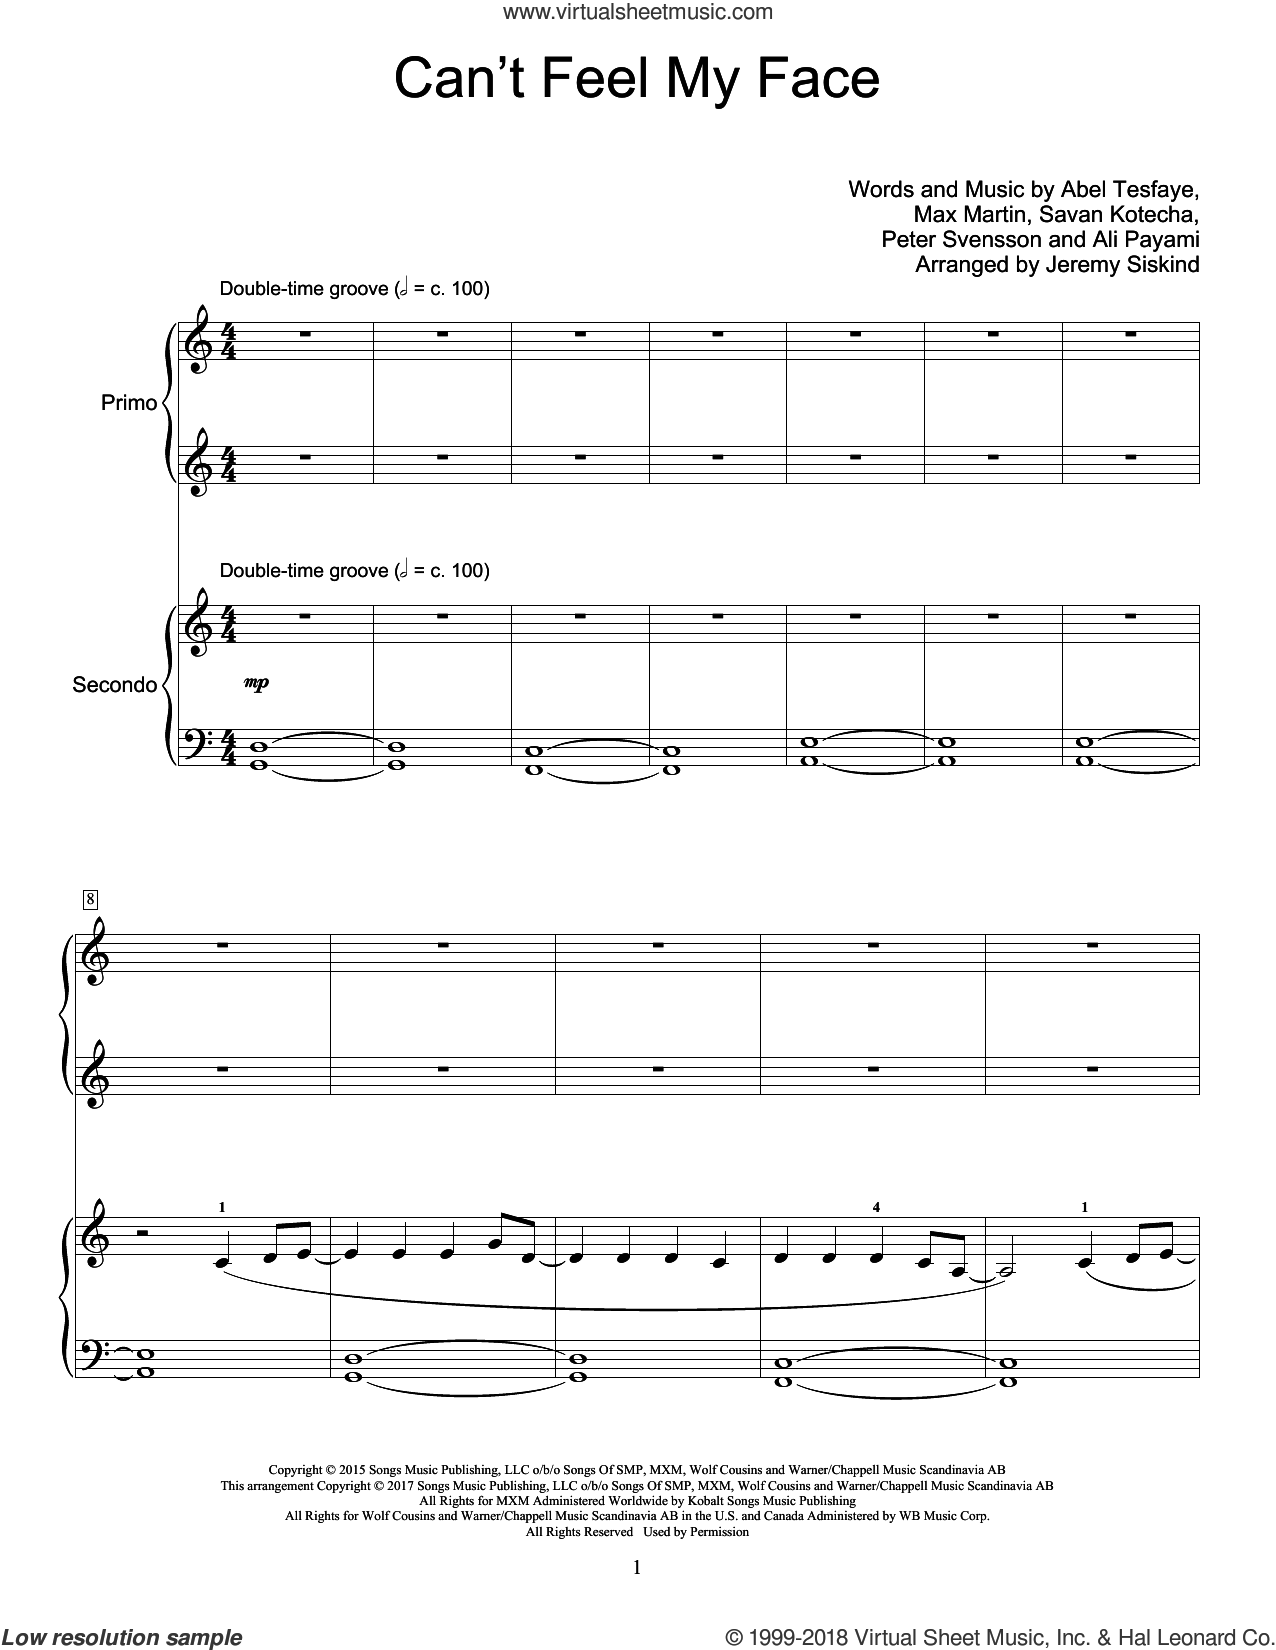 Can't Feel My Face sheet music for piano four hands by The Weeknd, Jeremy Siskind, Abel Tesfaye, Ali Payami, Max Martin, Peter Svensson and Savan Kotecha, intermediate skill level